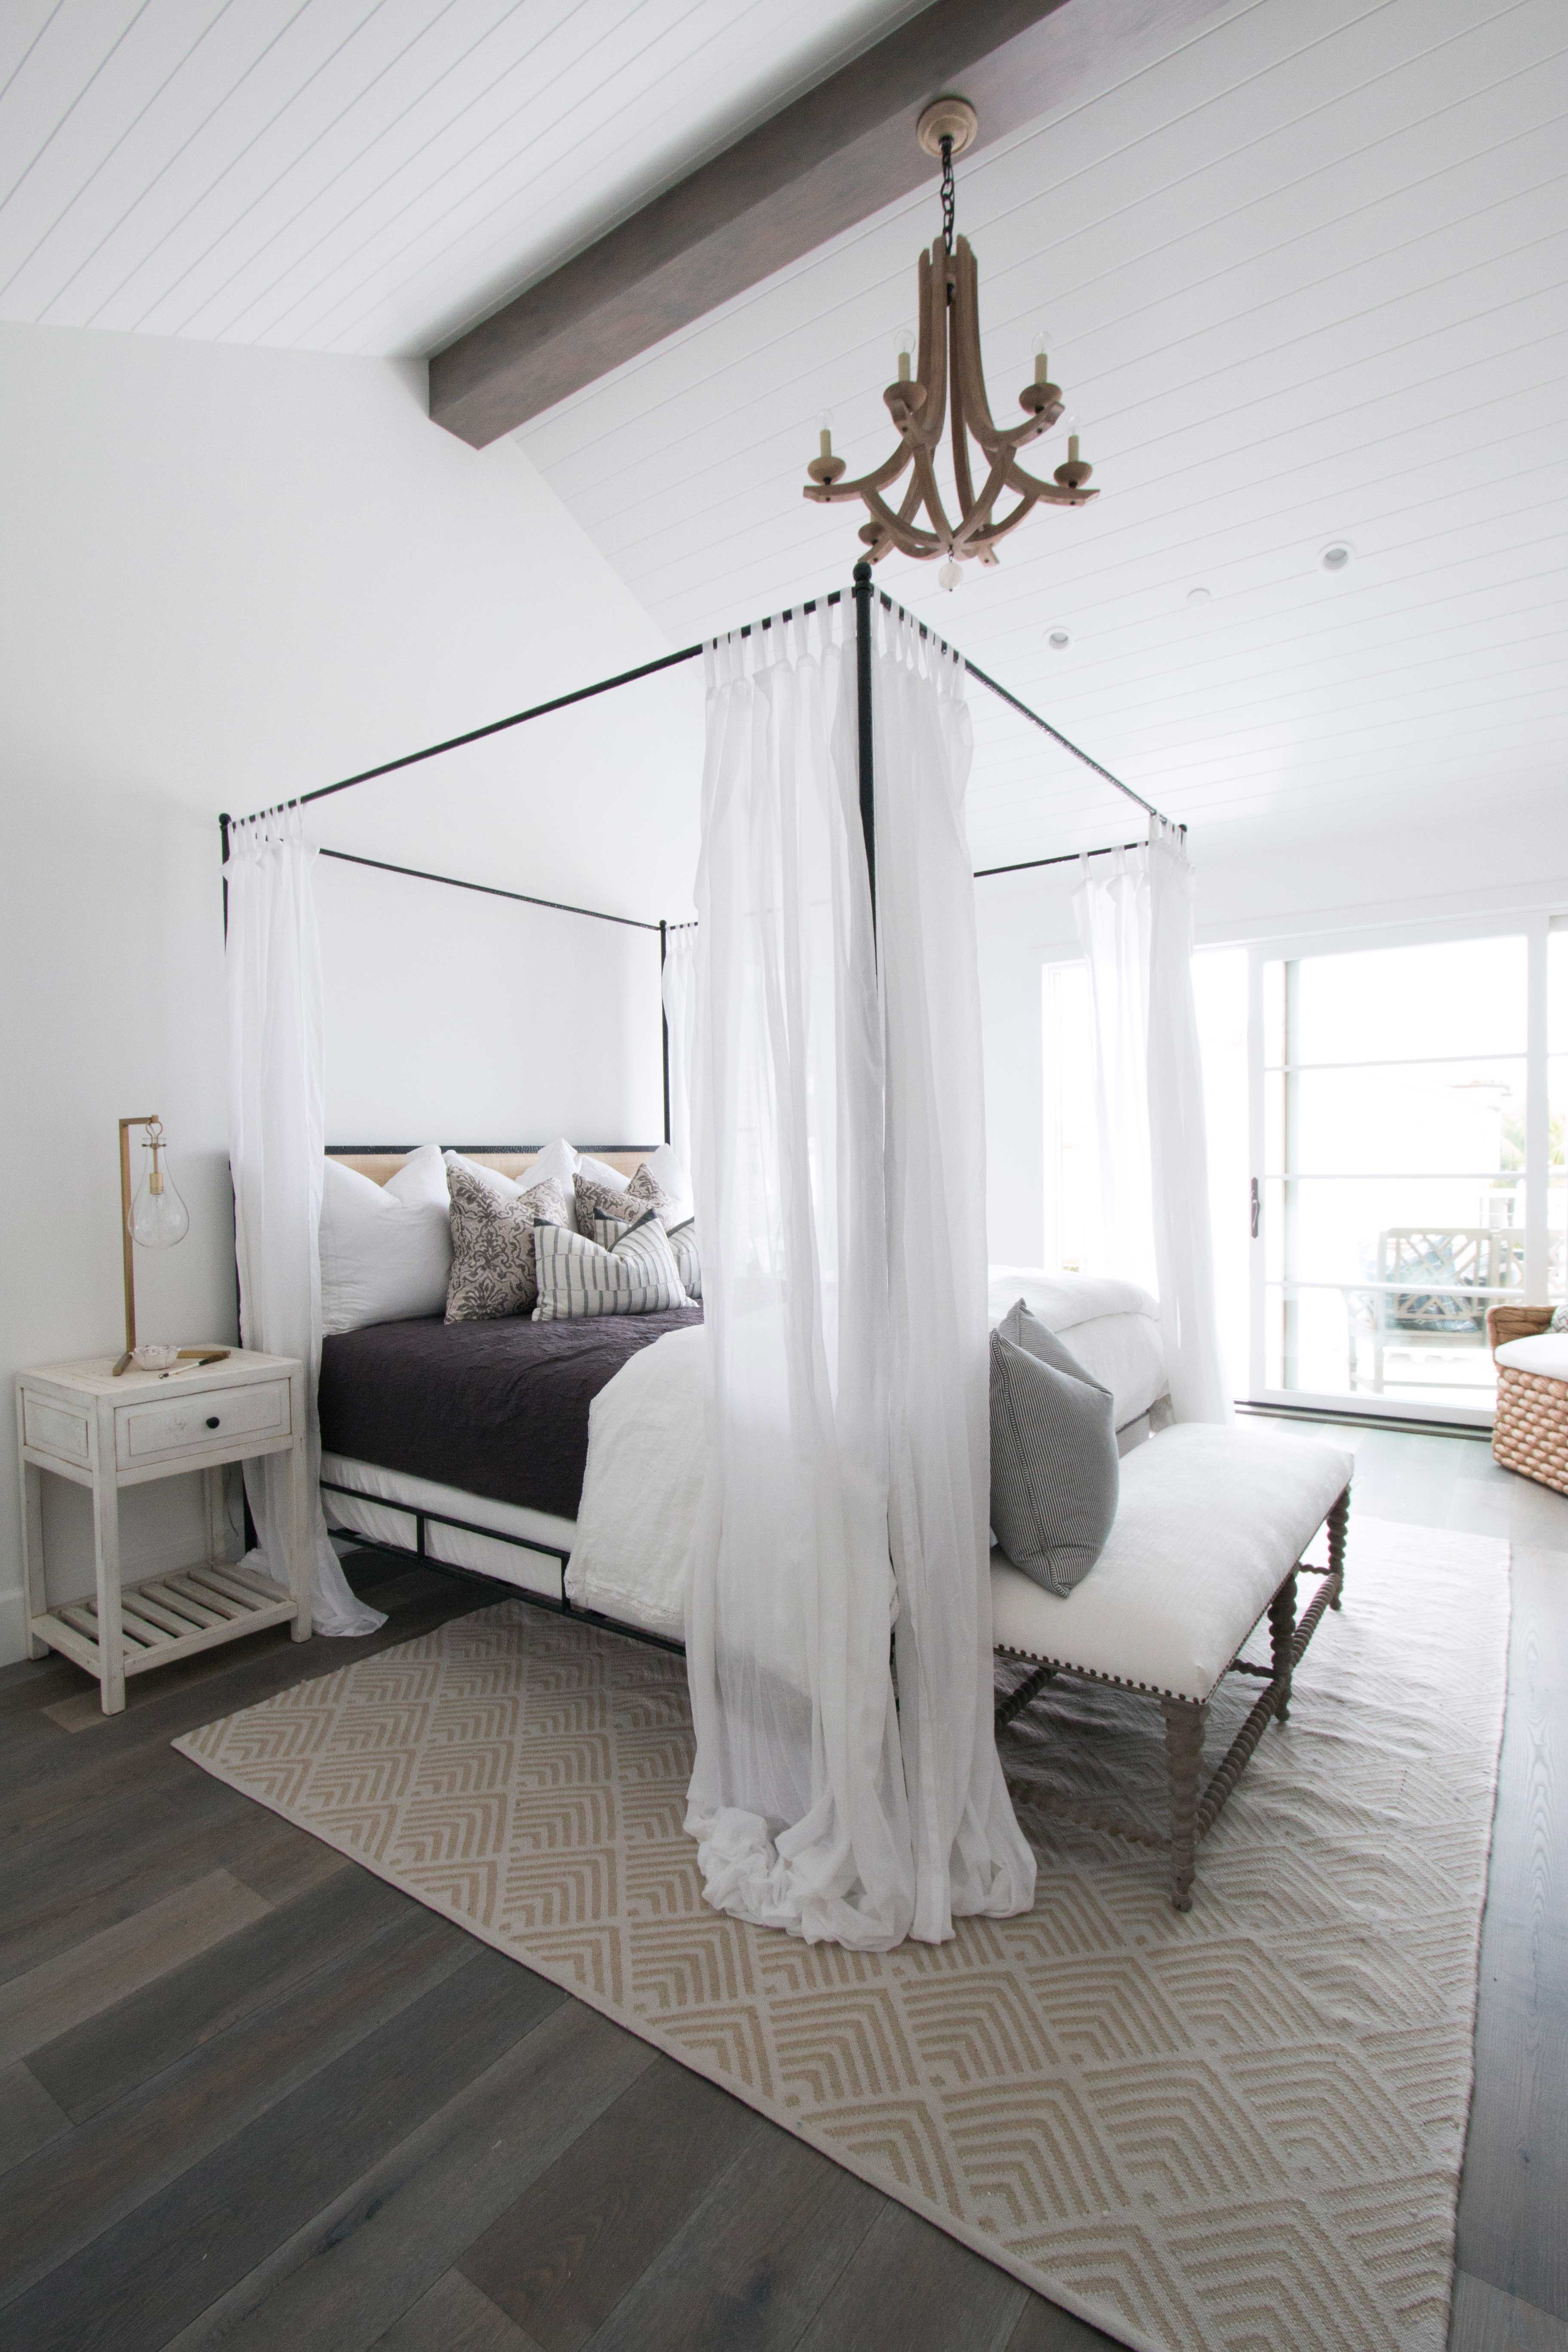 blackband_design_project_west_bay_master_bedroom_01